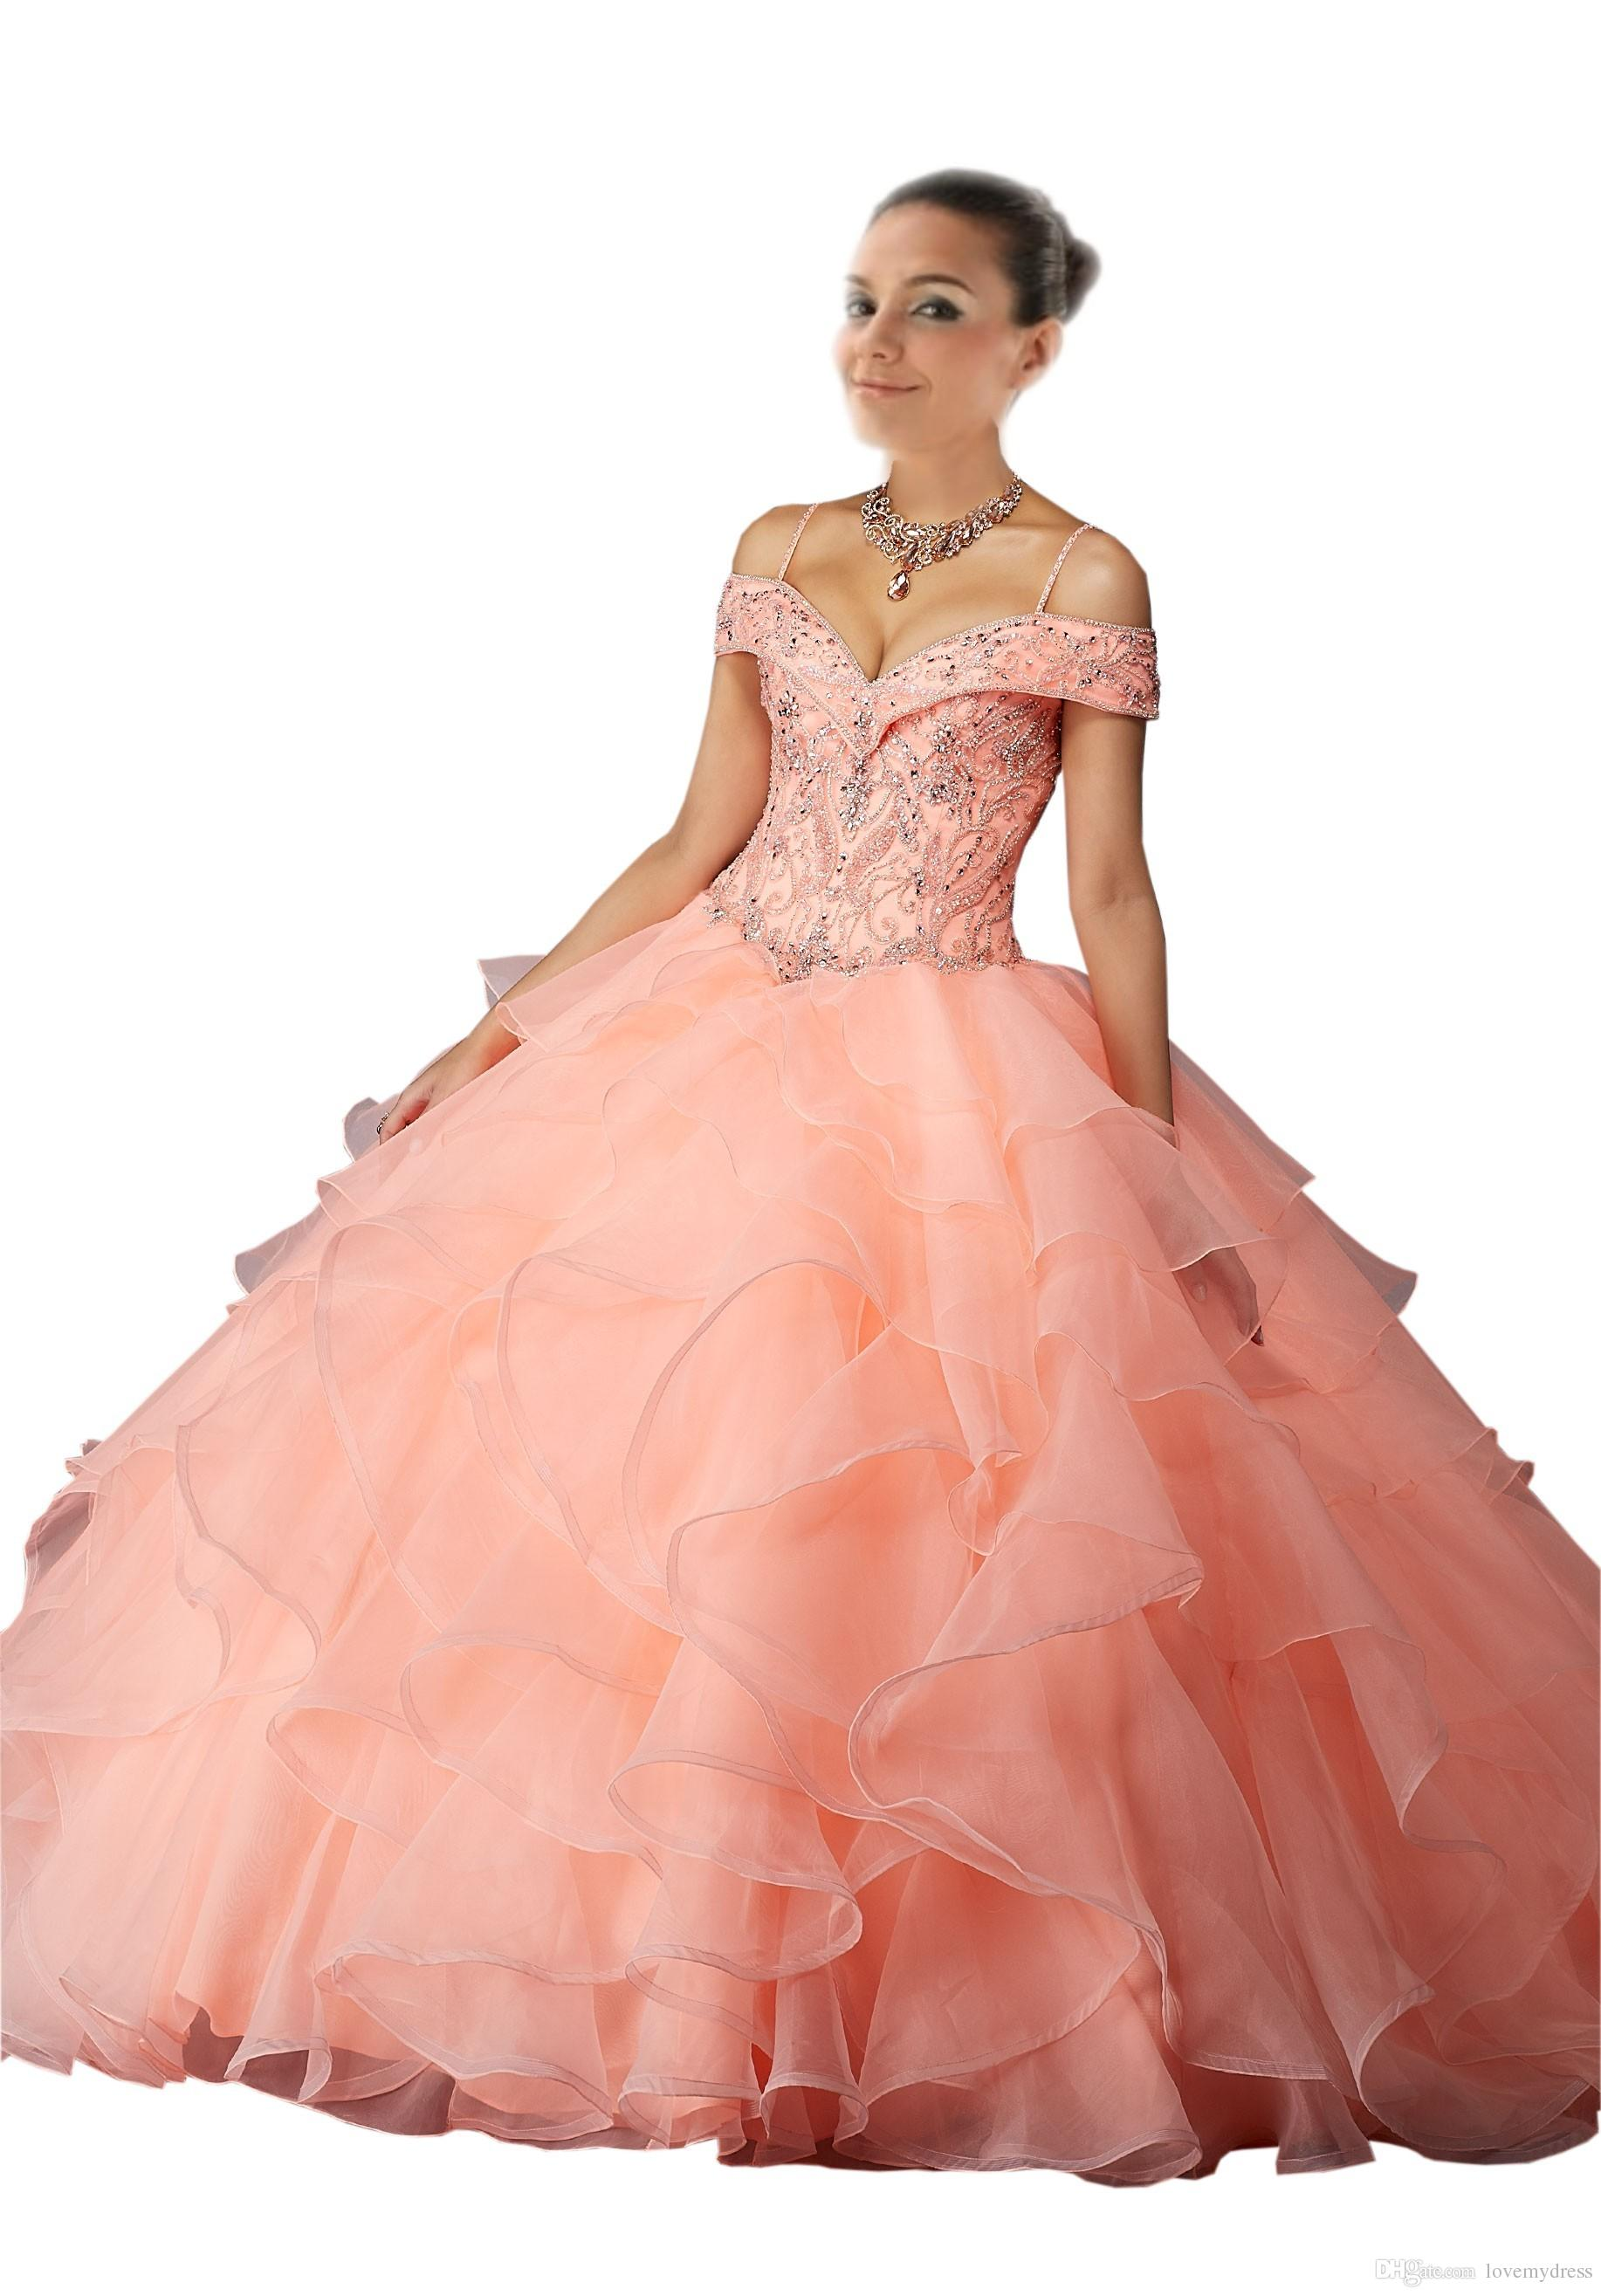 8e73ad0fbb1 Coral Cold Shoulder Prom Quinceanera Dresses Organza Crystal Beaded Sweet  16 Girls Ball Gown Ruffles Long Cheap Beads Vestidos 15 Anos Dress Online  Dress ...